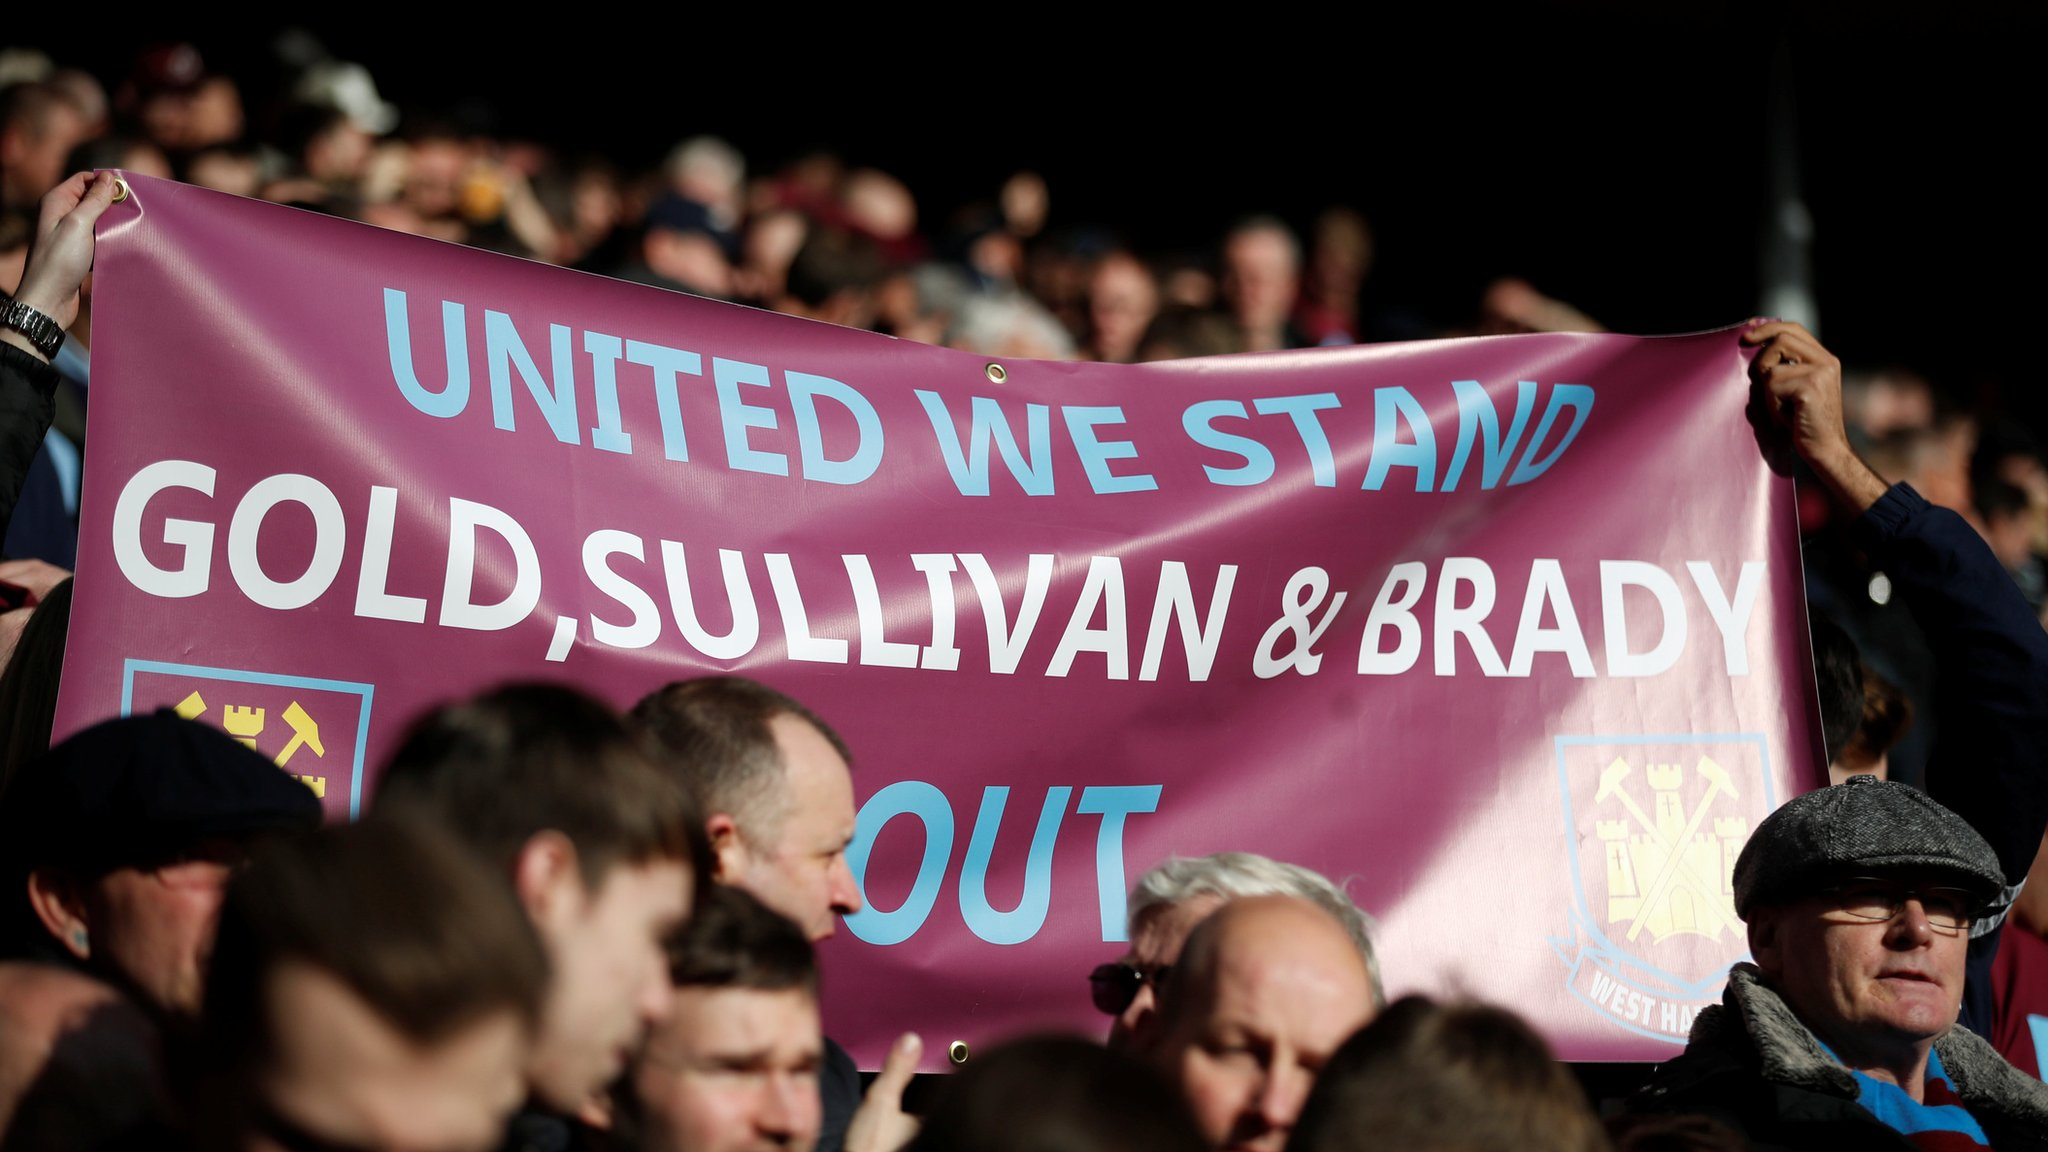 West Ham's Sullivan 'hit by coin' amid fan trouble